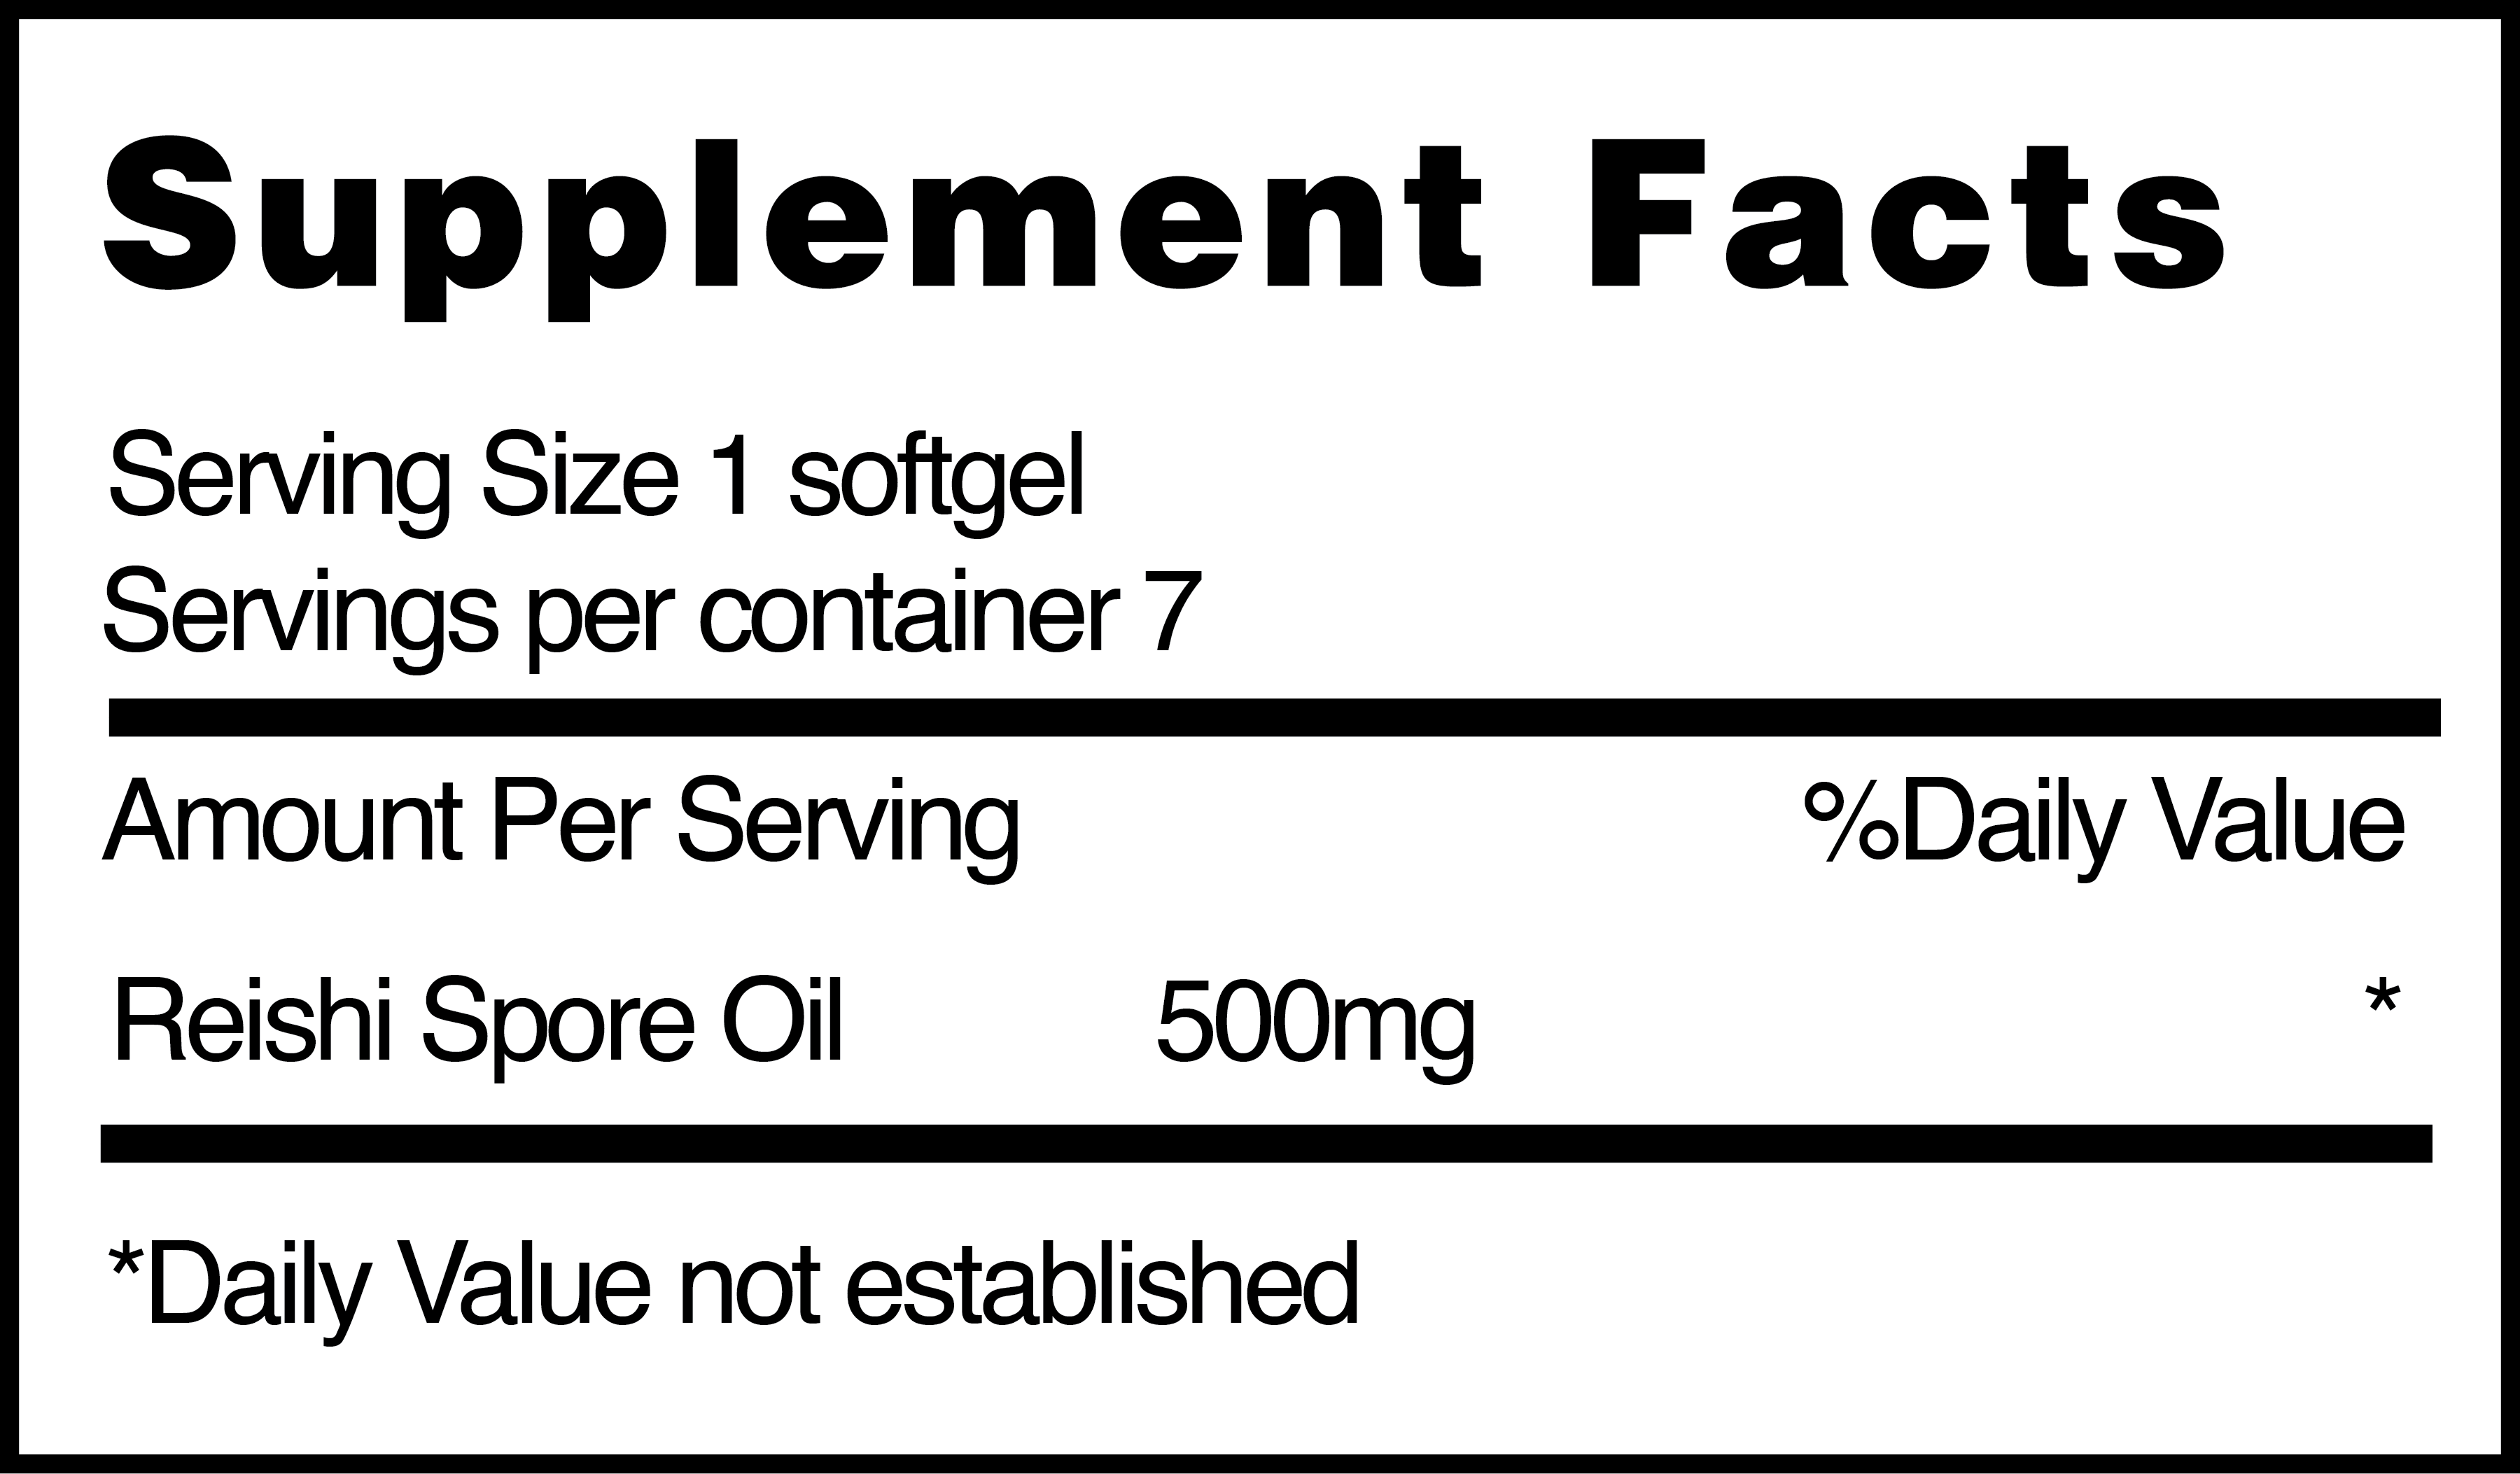 Reishi Spore Oil nutrition facts